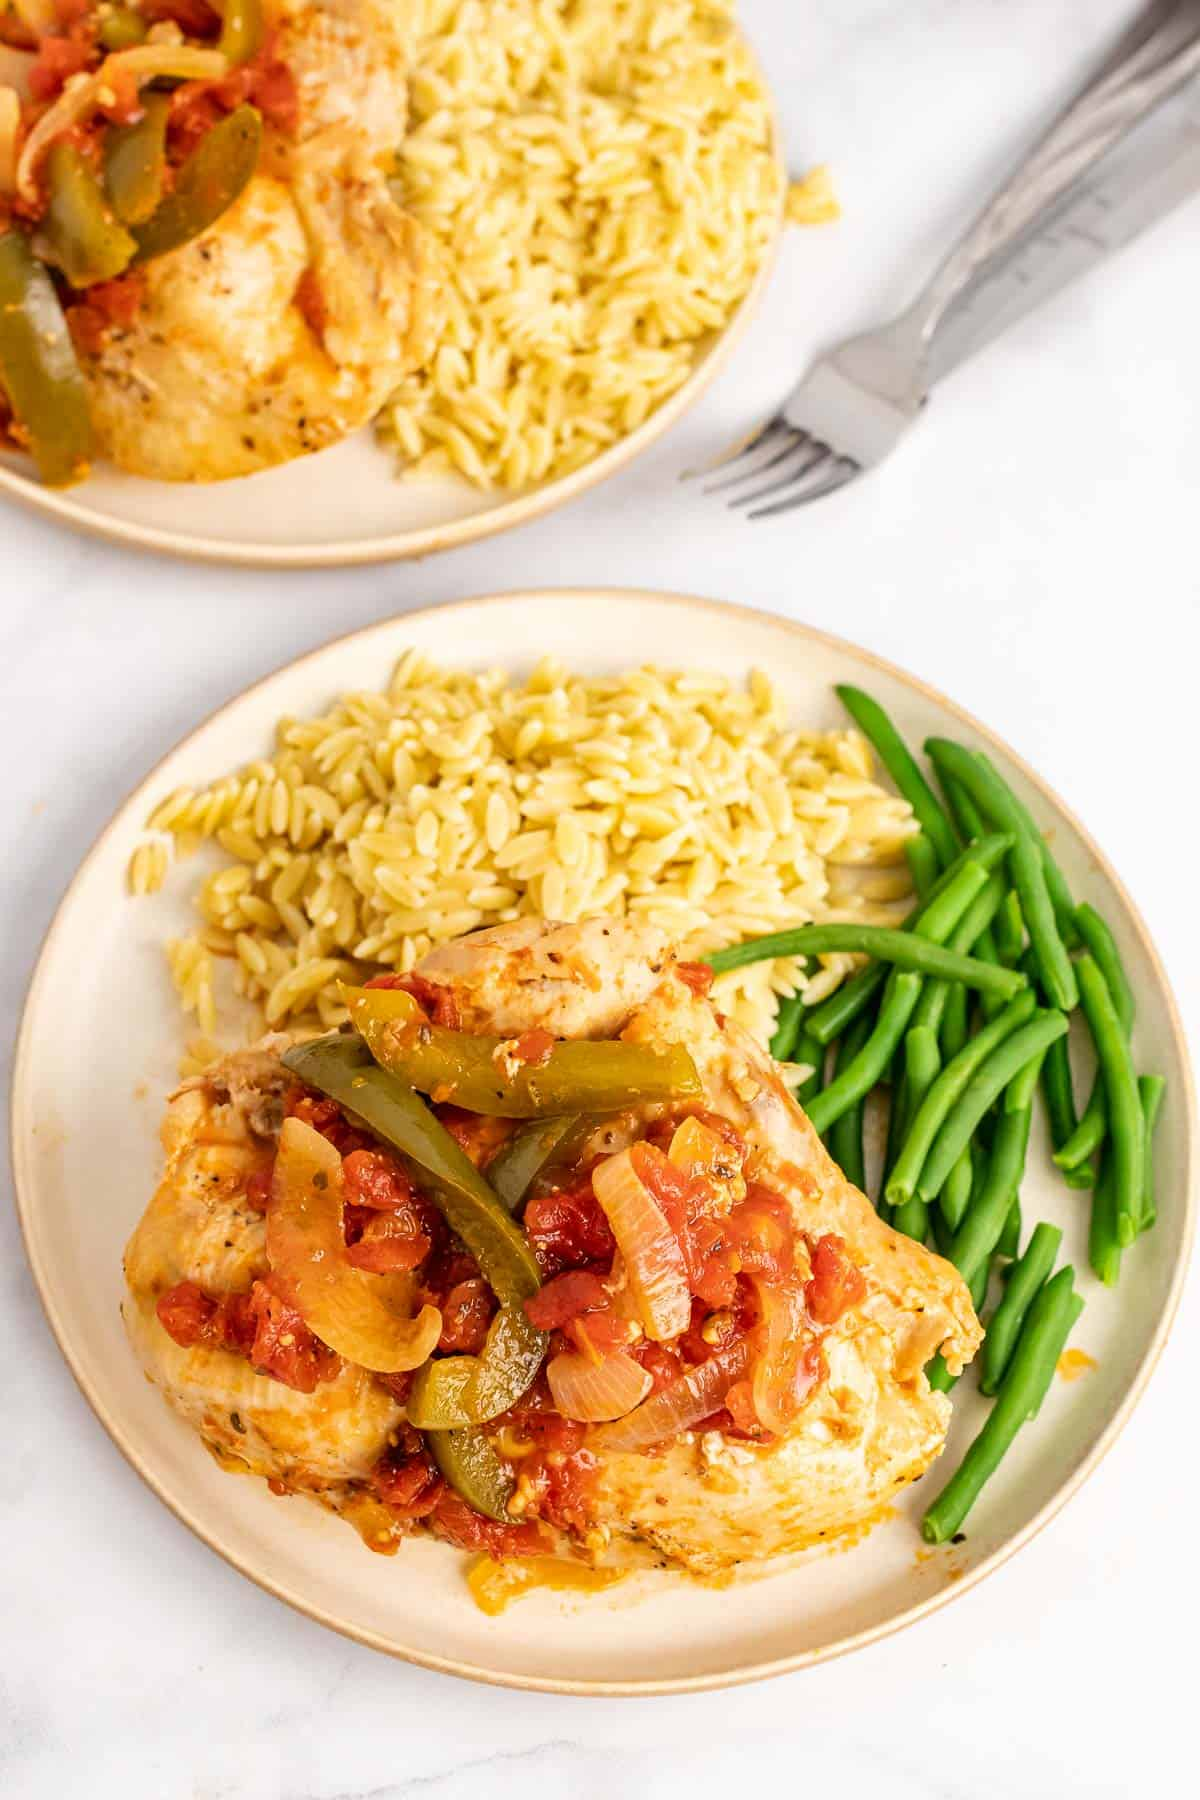 Plate of Chicken Cacciatore with orzo and green beans